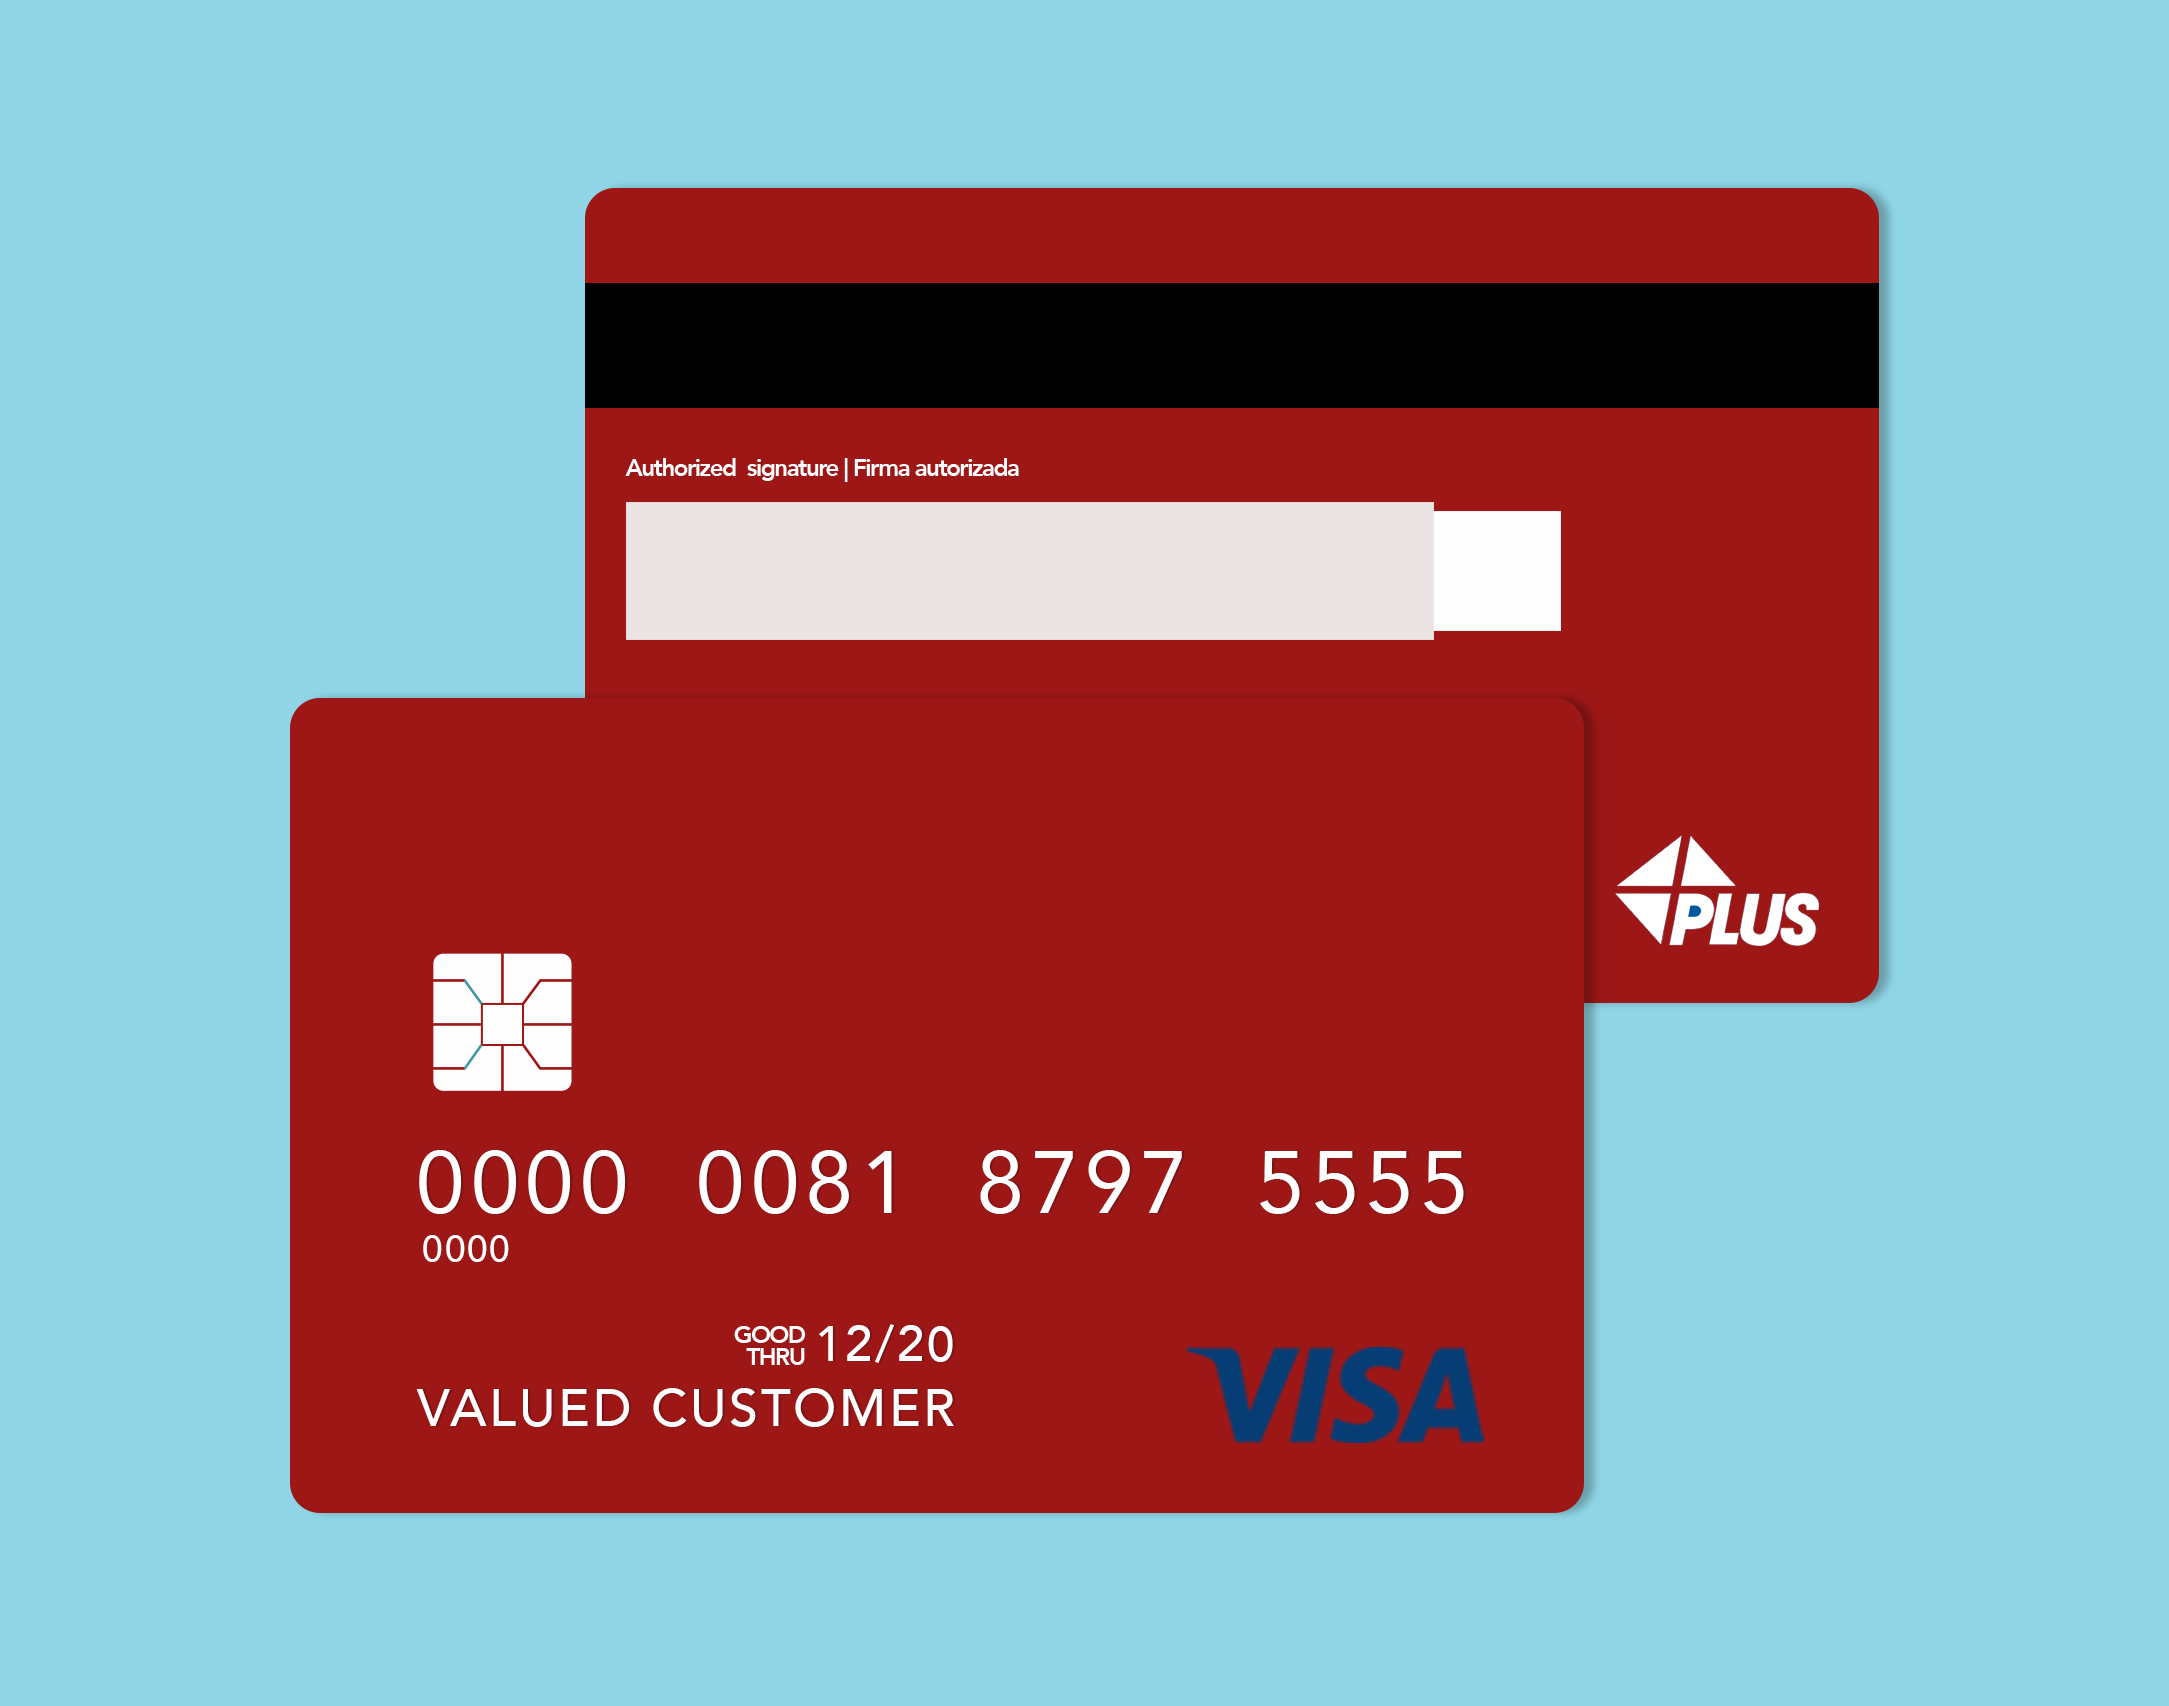 Vector of A Visa Credit Card